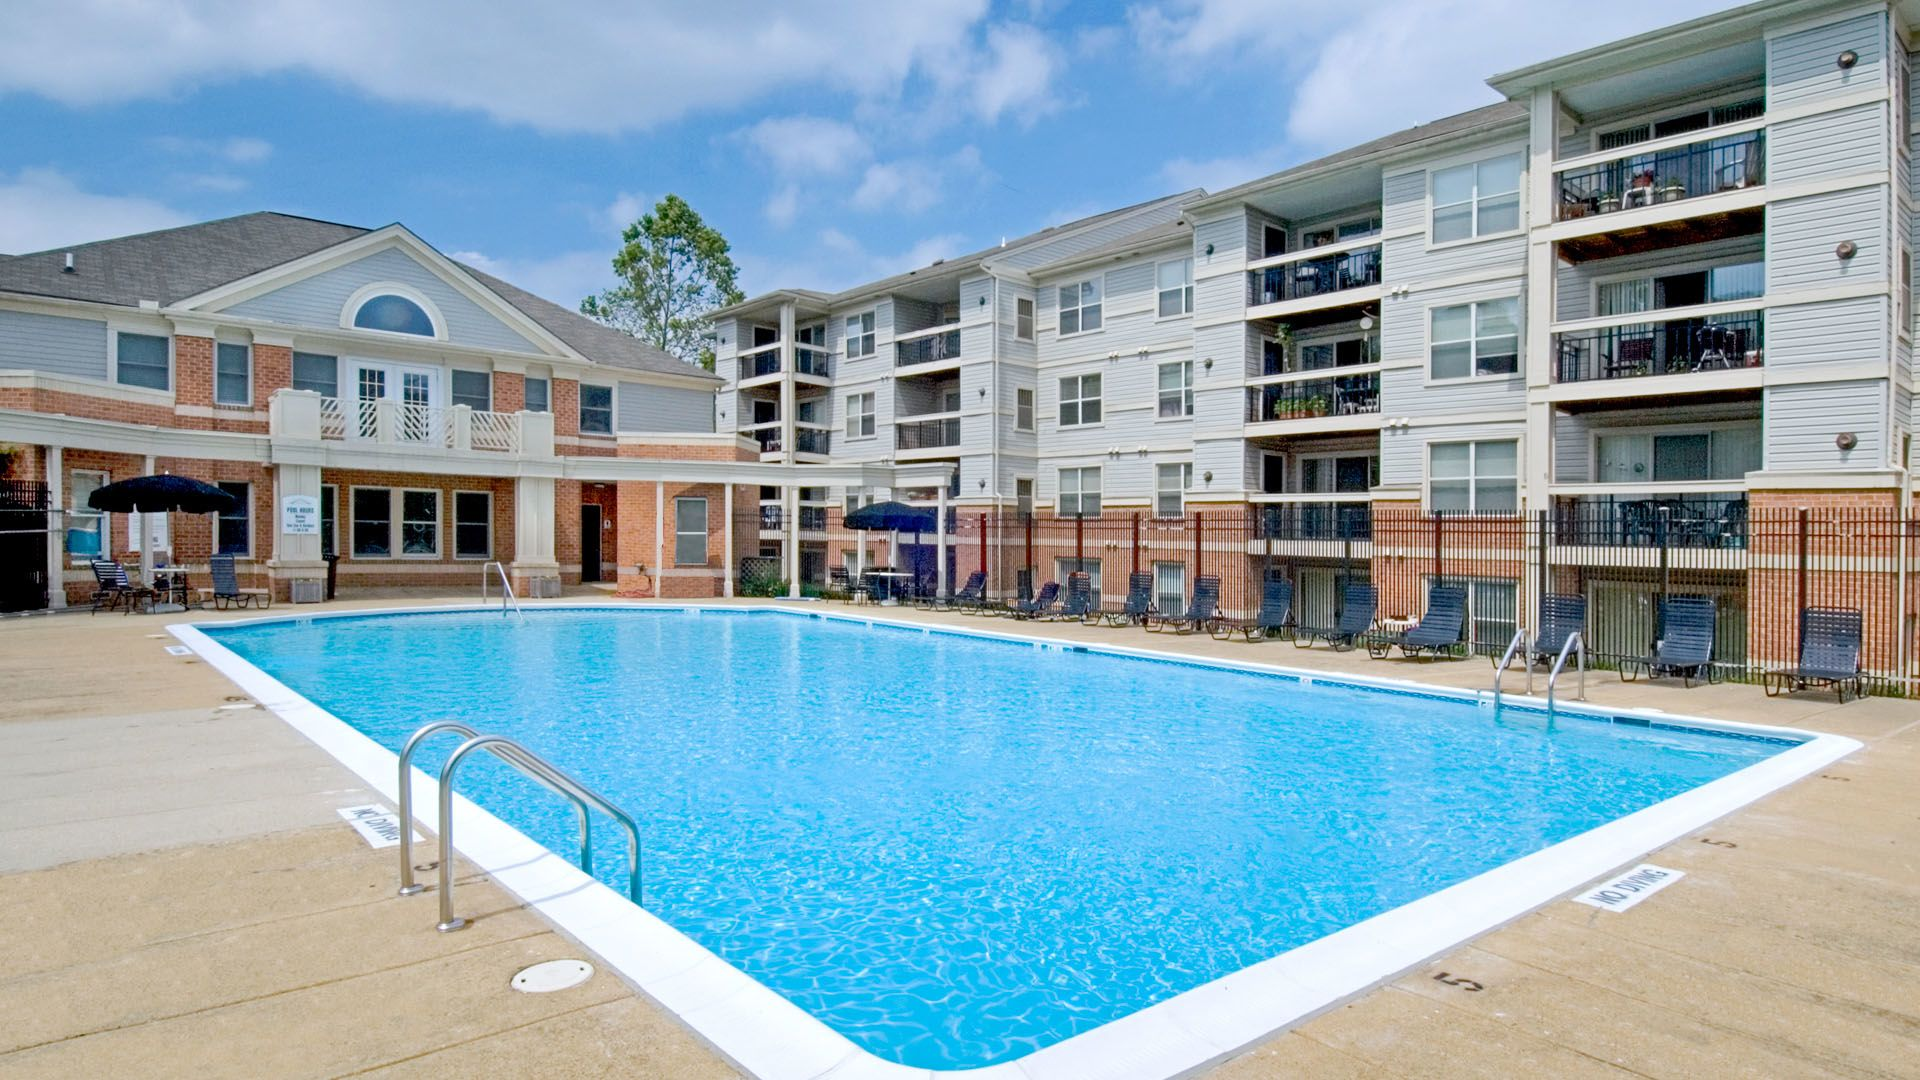 Dazzling New Apartments in Waldorf Md | Stylish Adams Crossing Apartments